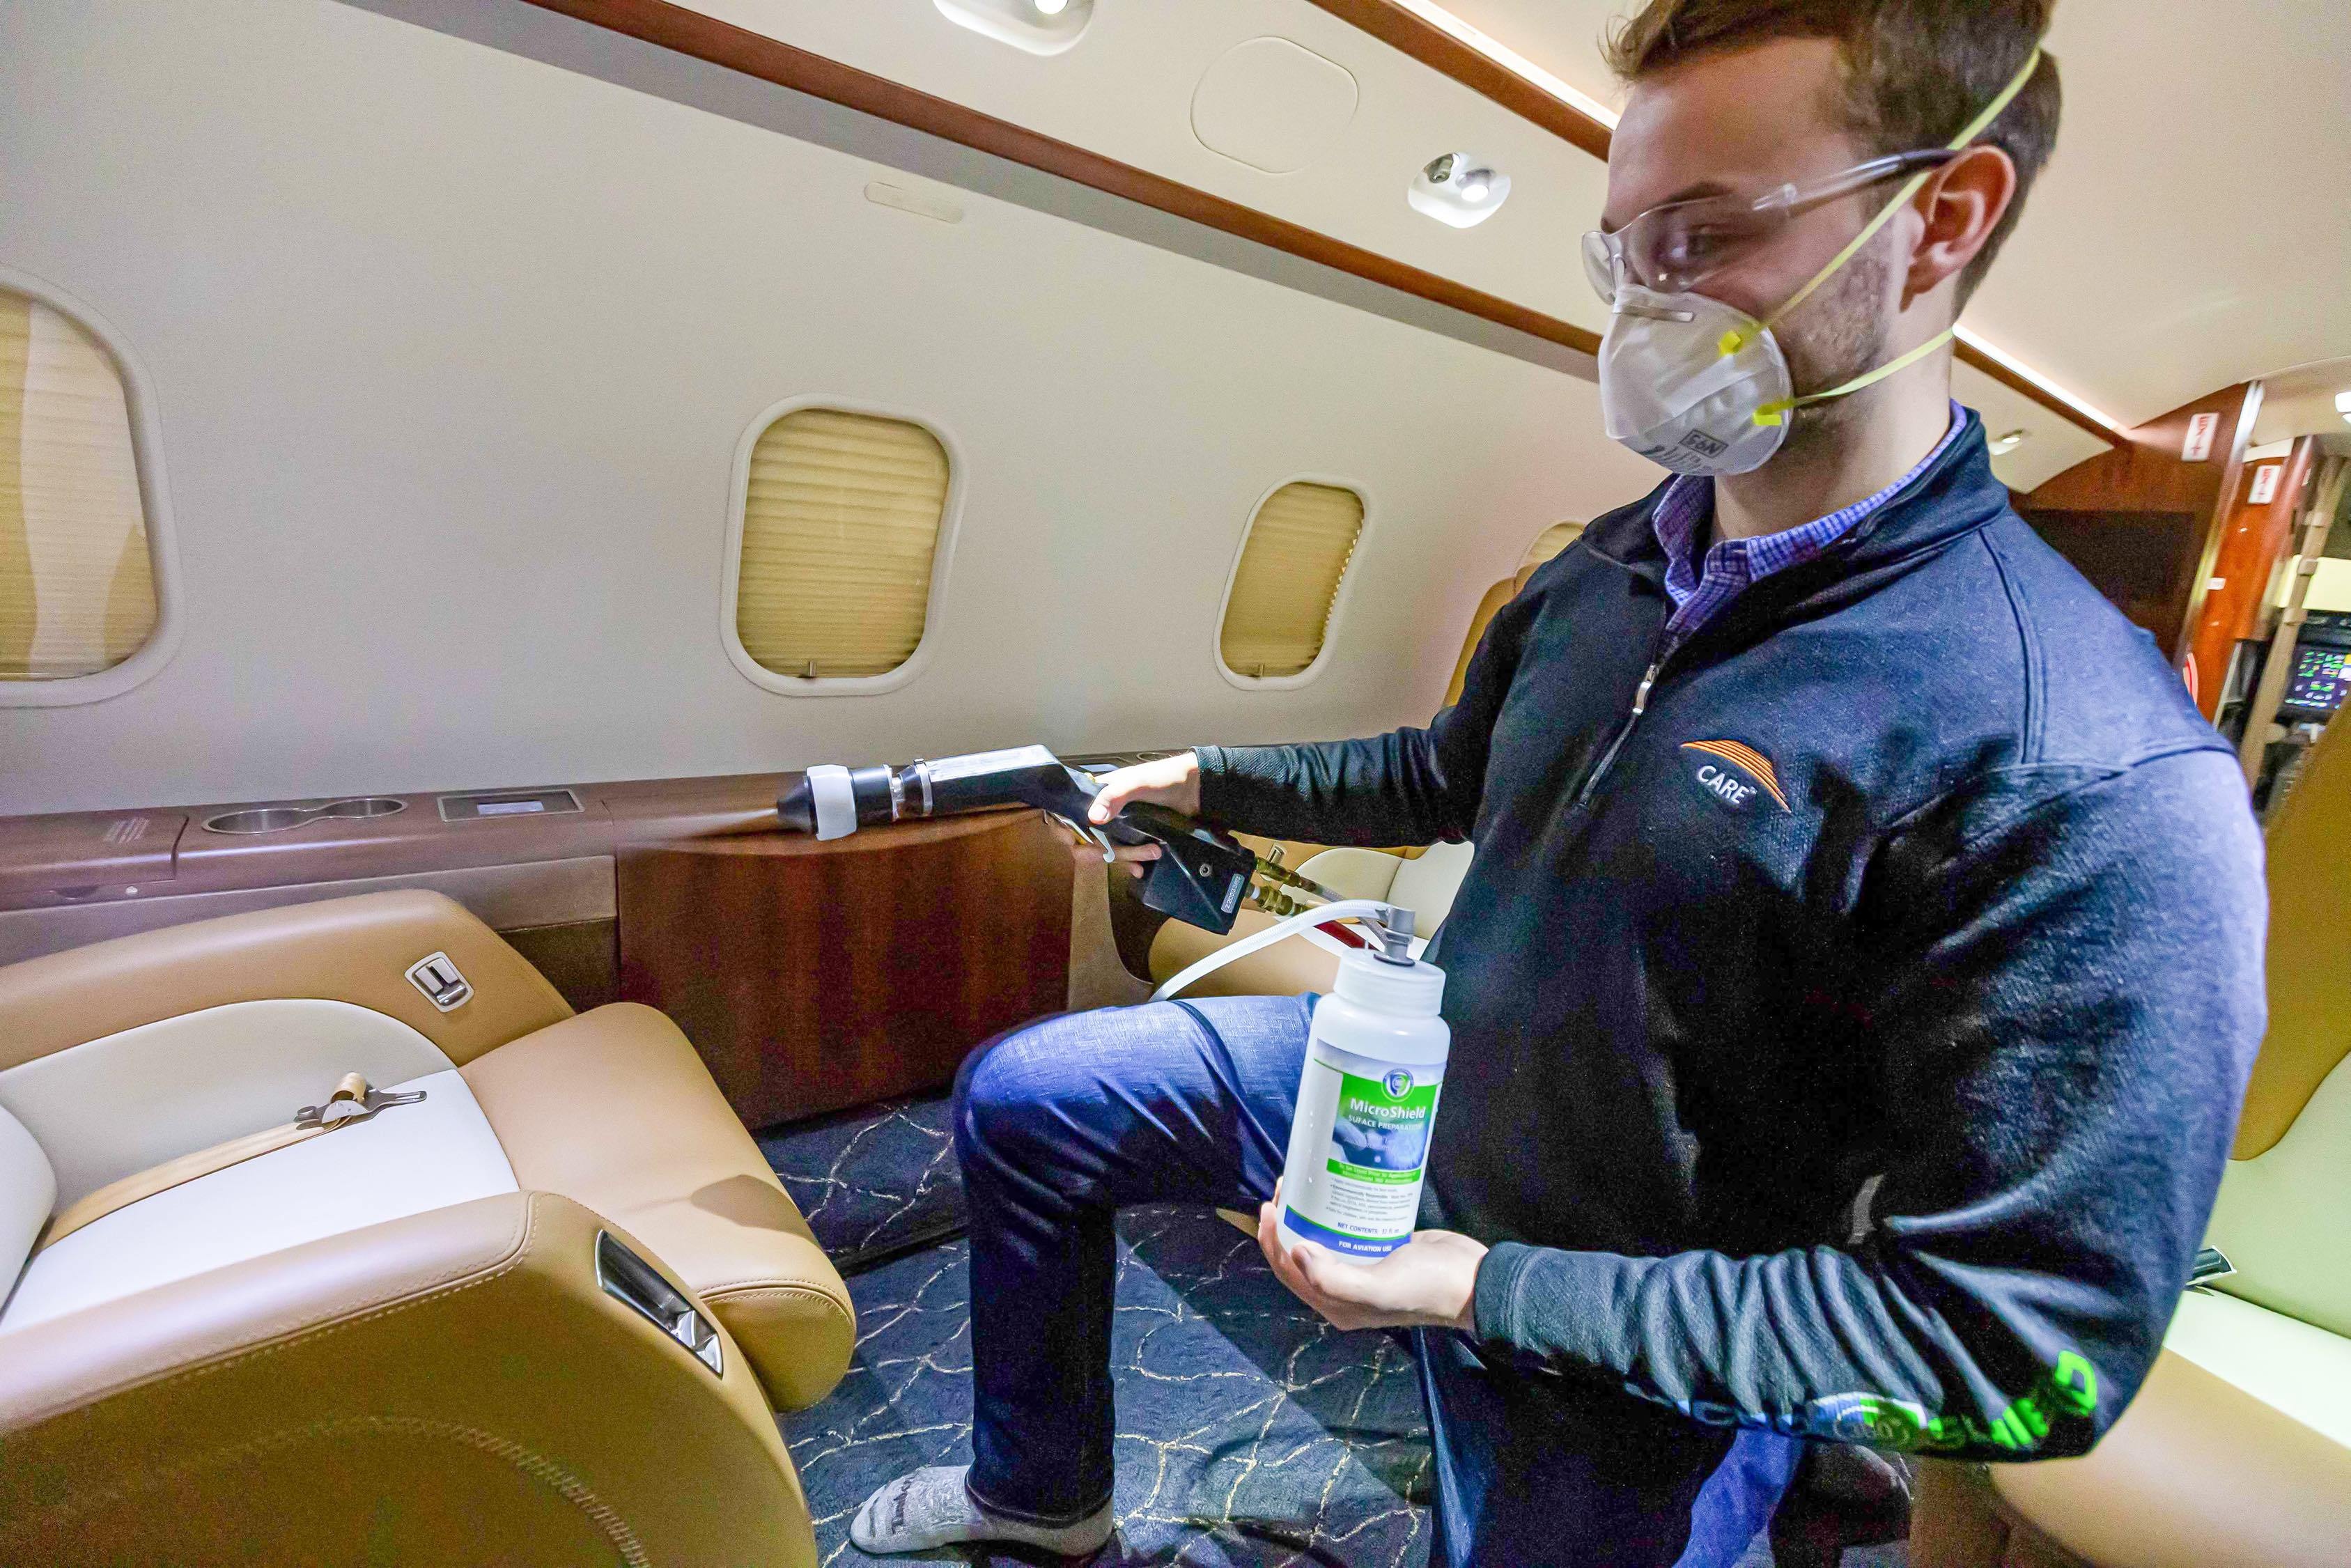 Spraying is part of a three-step antimicrobial shielding process to protect aviation passengers and crew from viruses